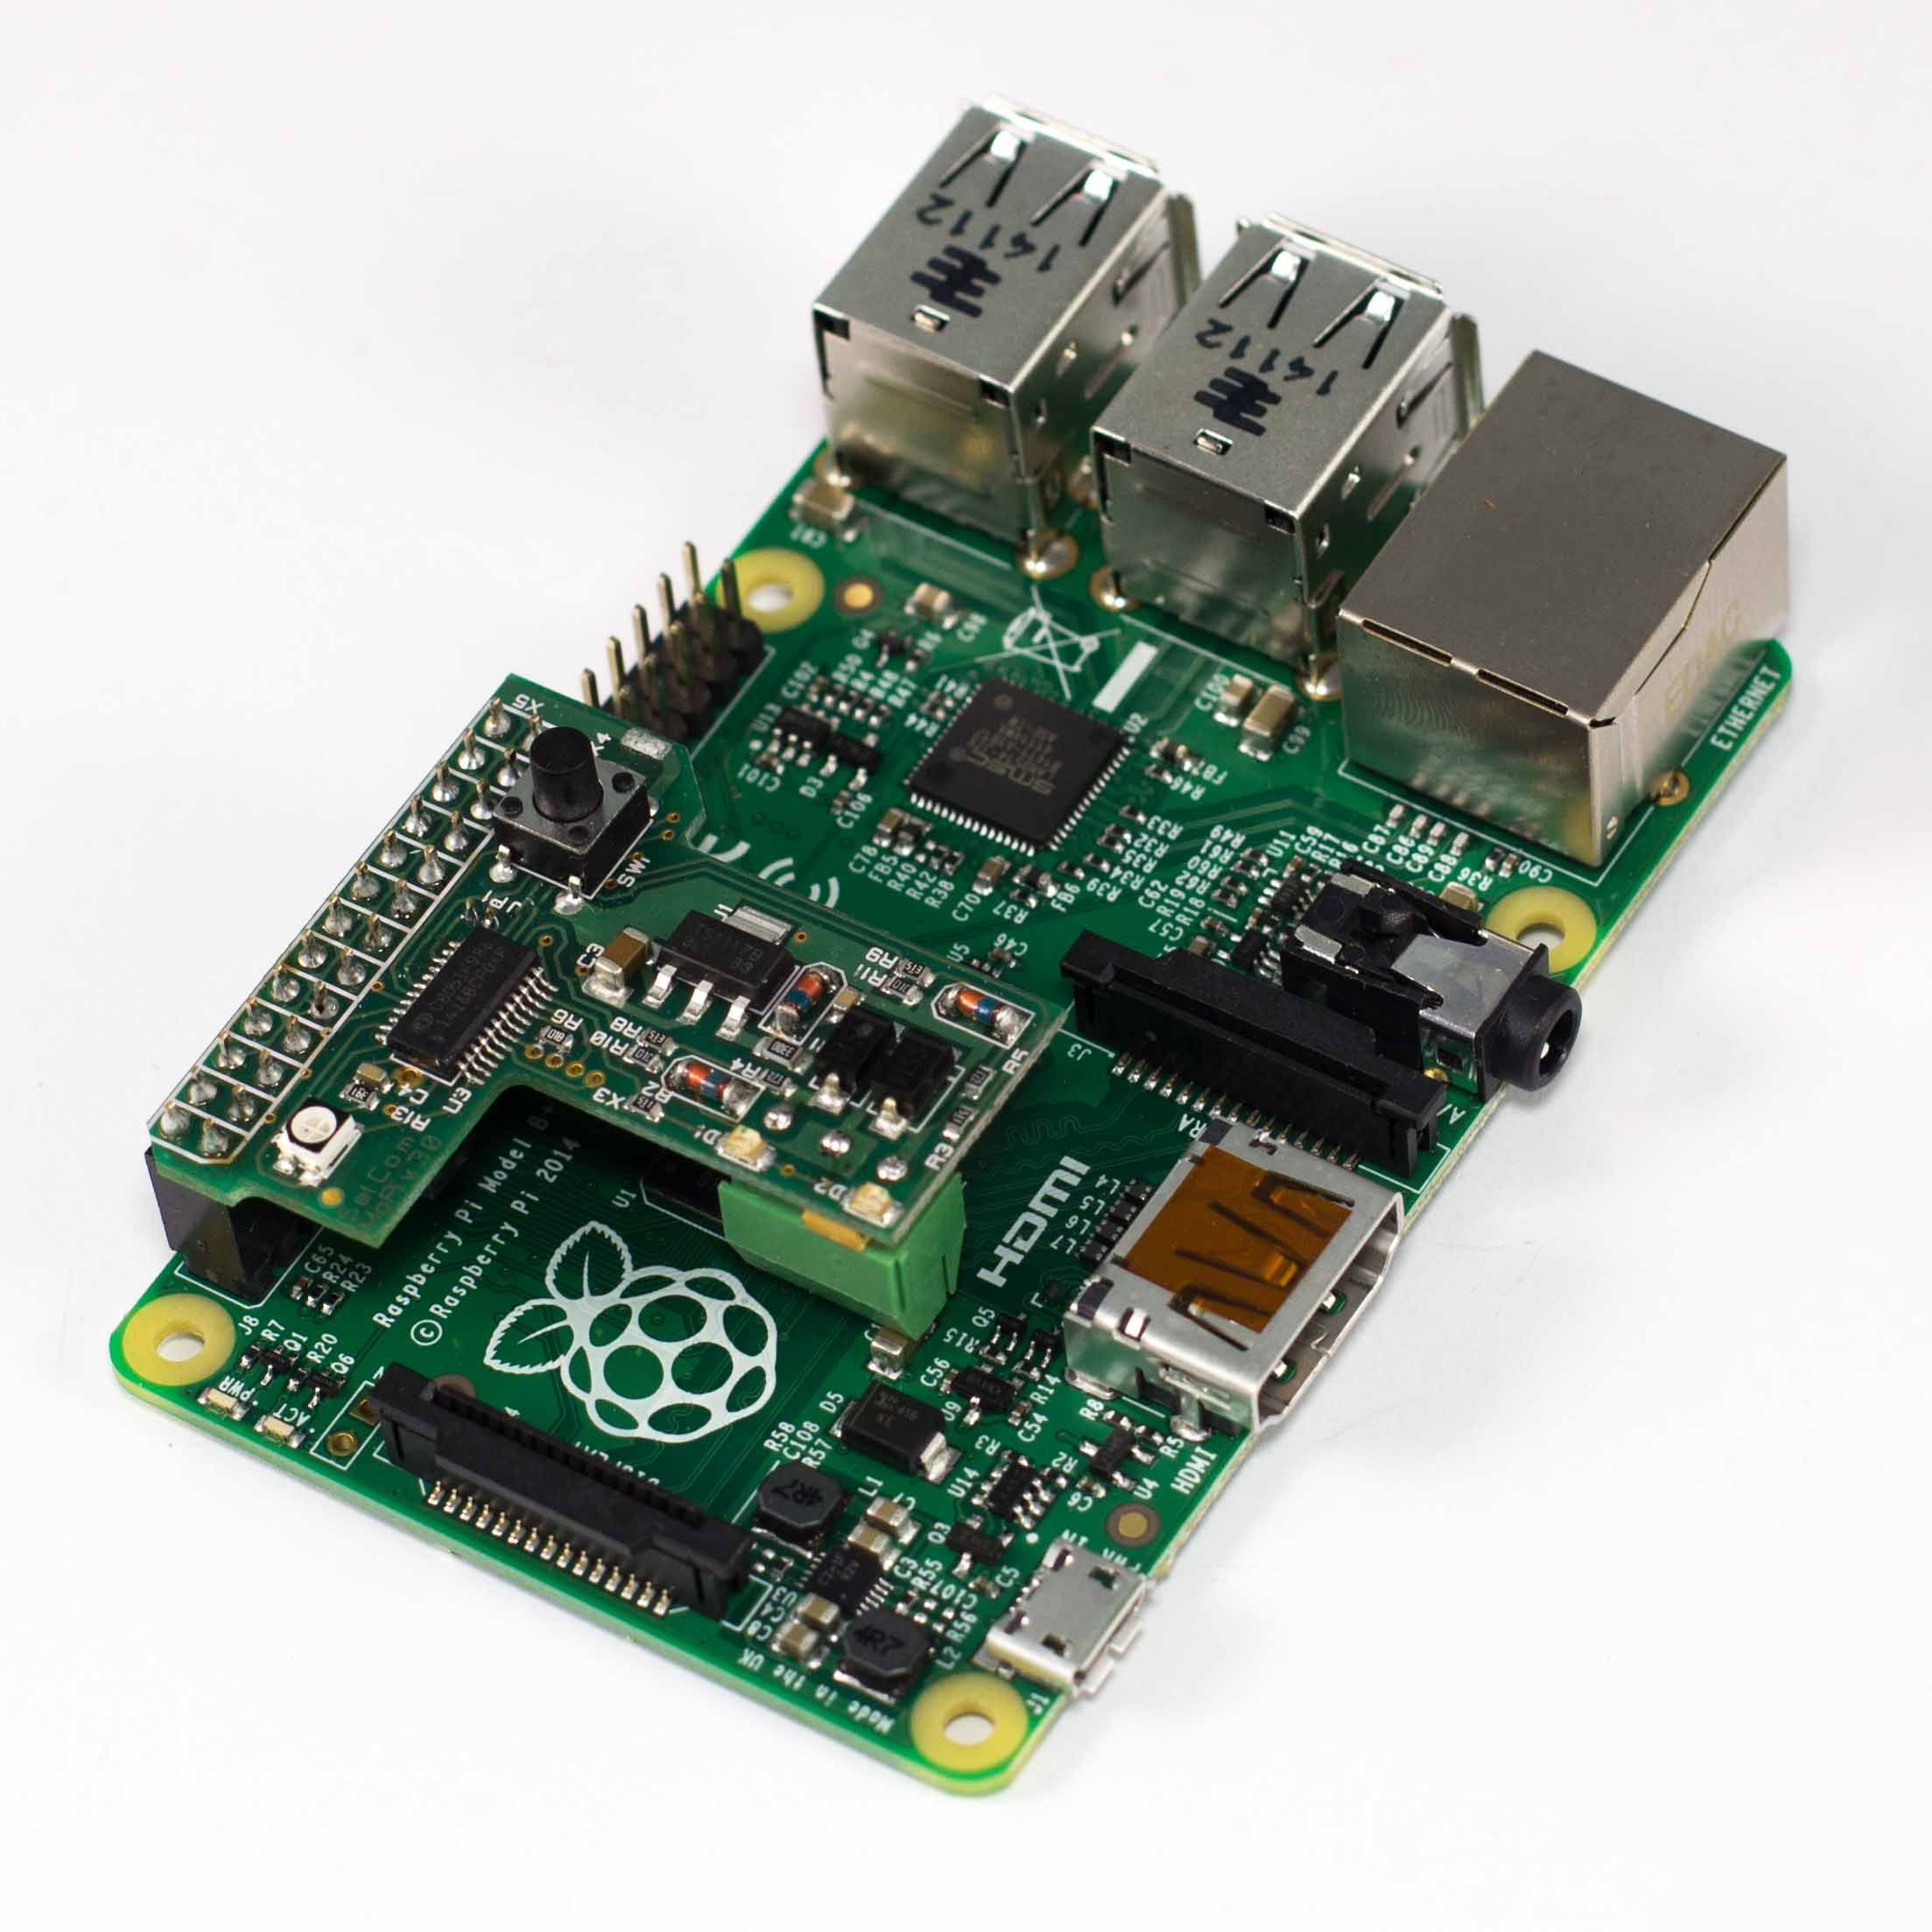 Mopi Hot Swap Mobile Power For The Pi Wiringpi Bcm2708 Product Pic